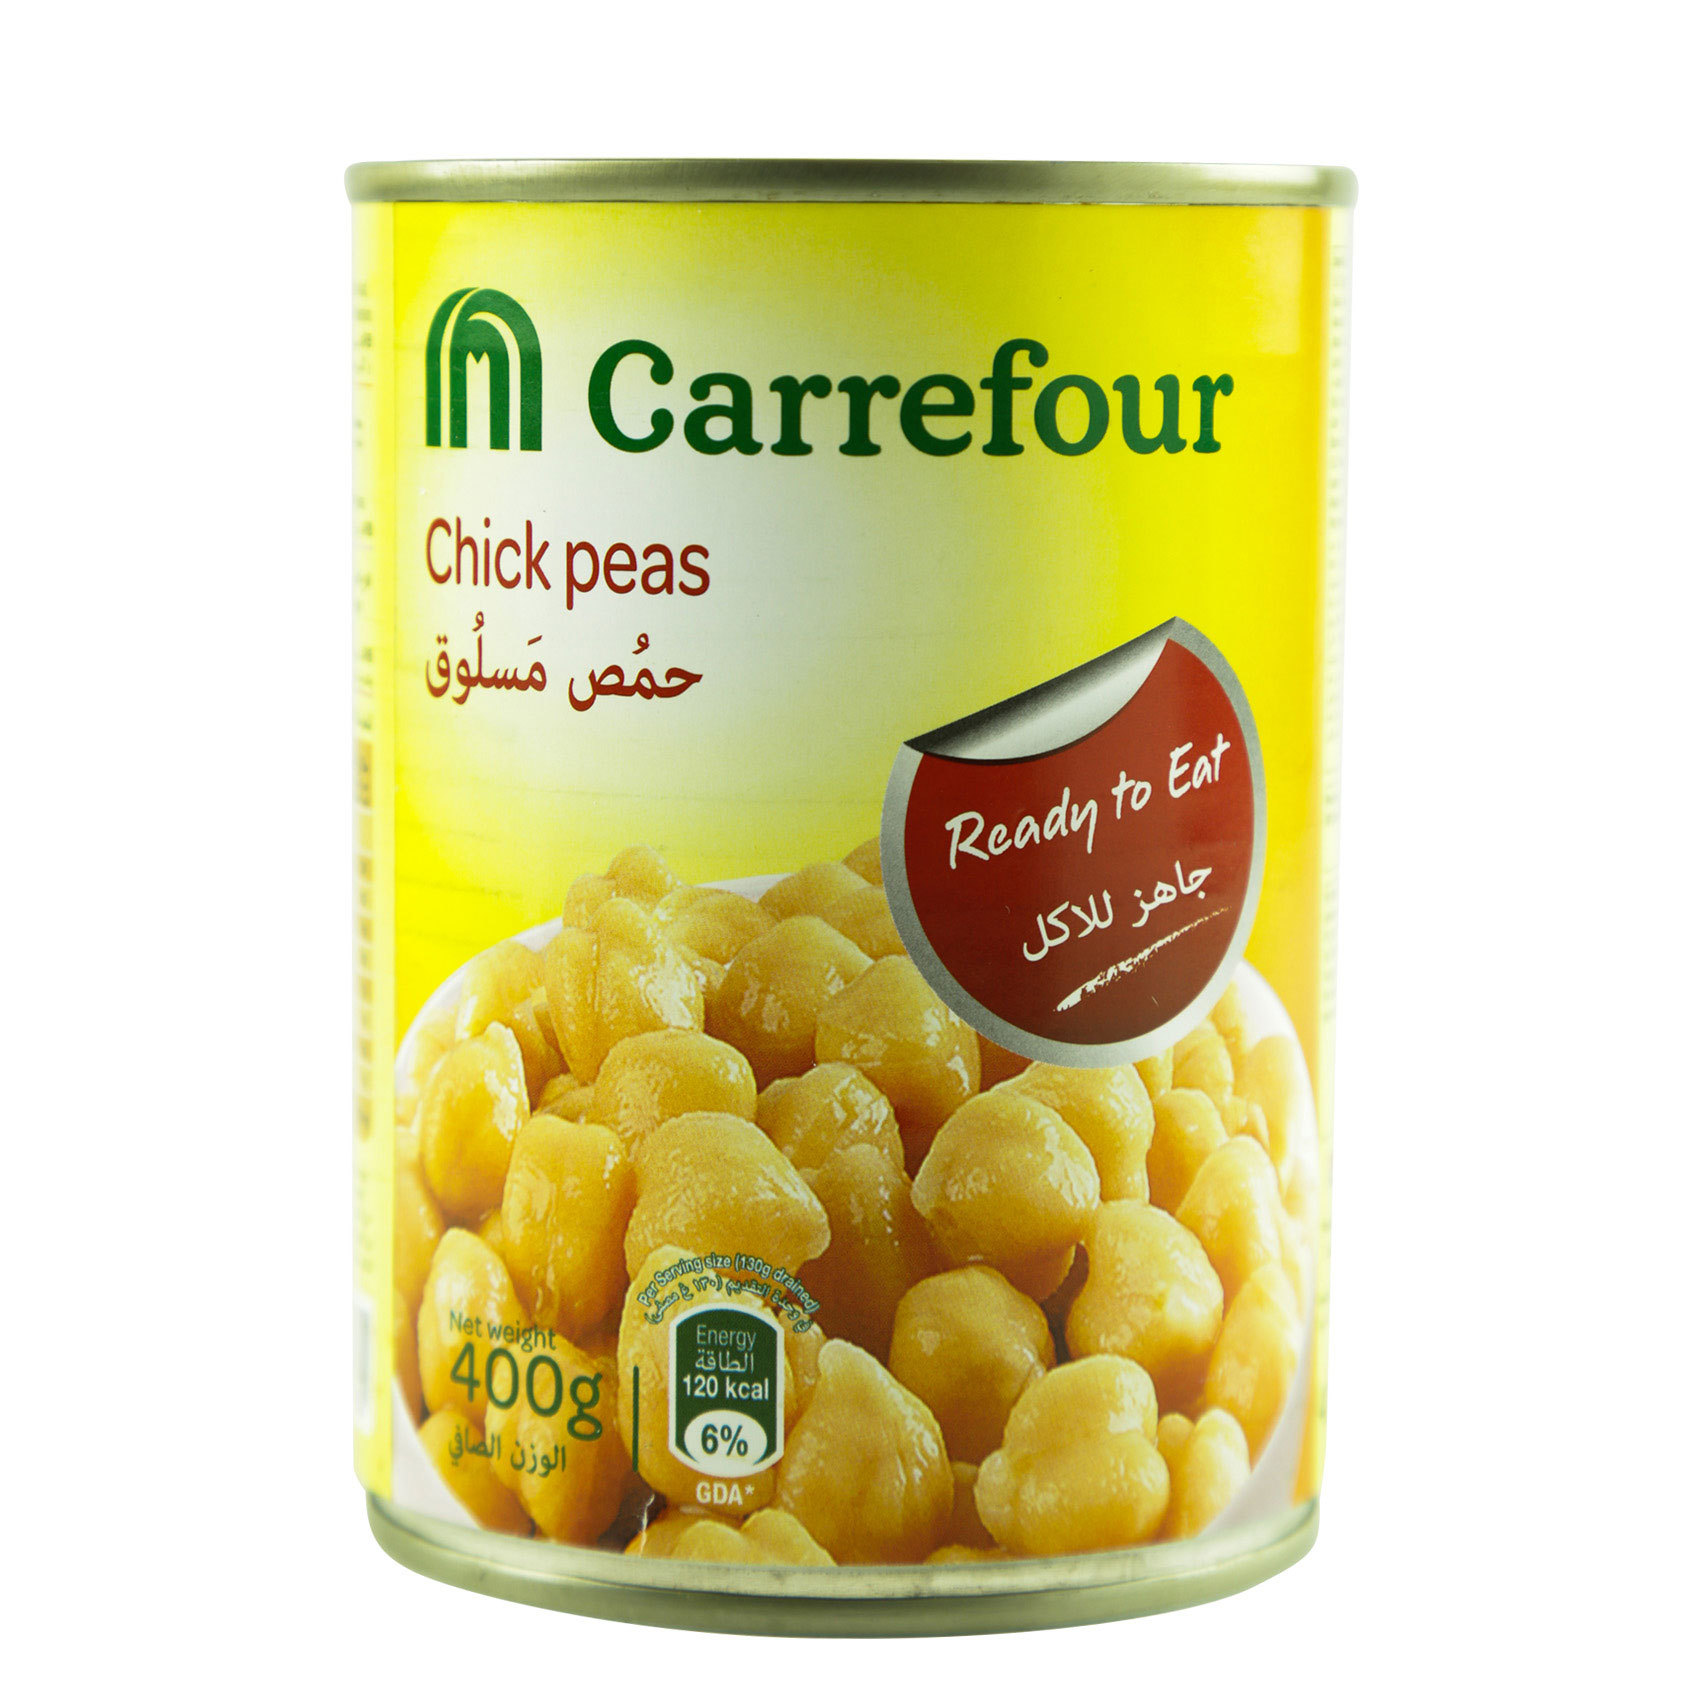 CRF CHICK PEAS 400G